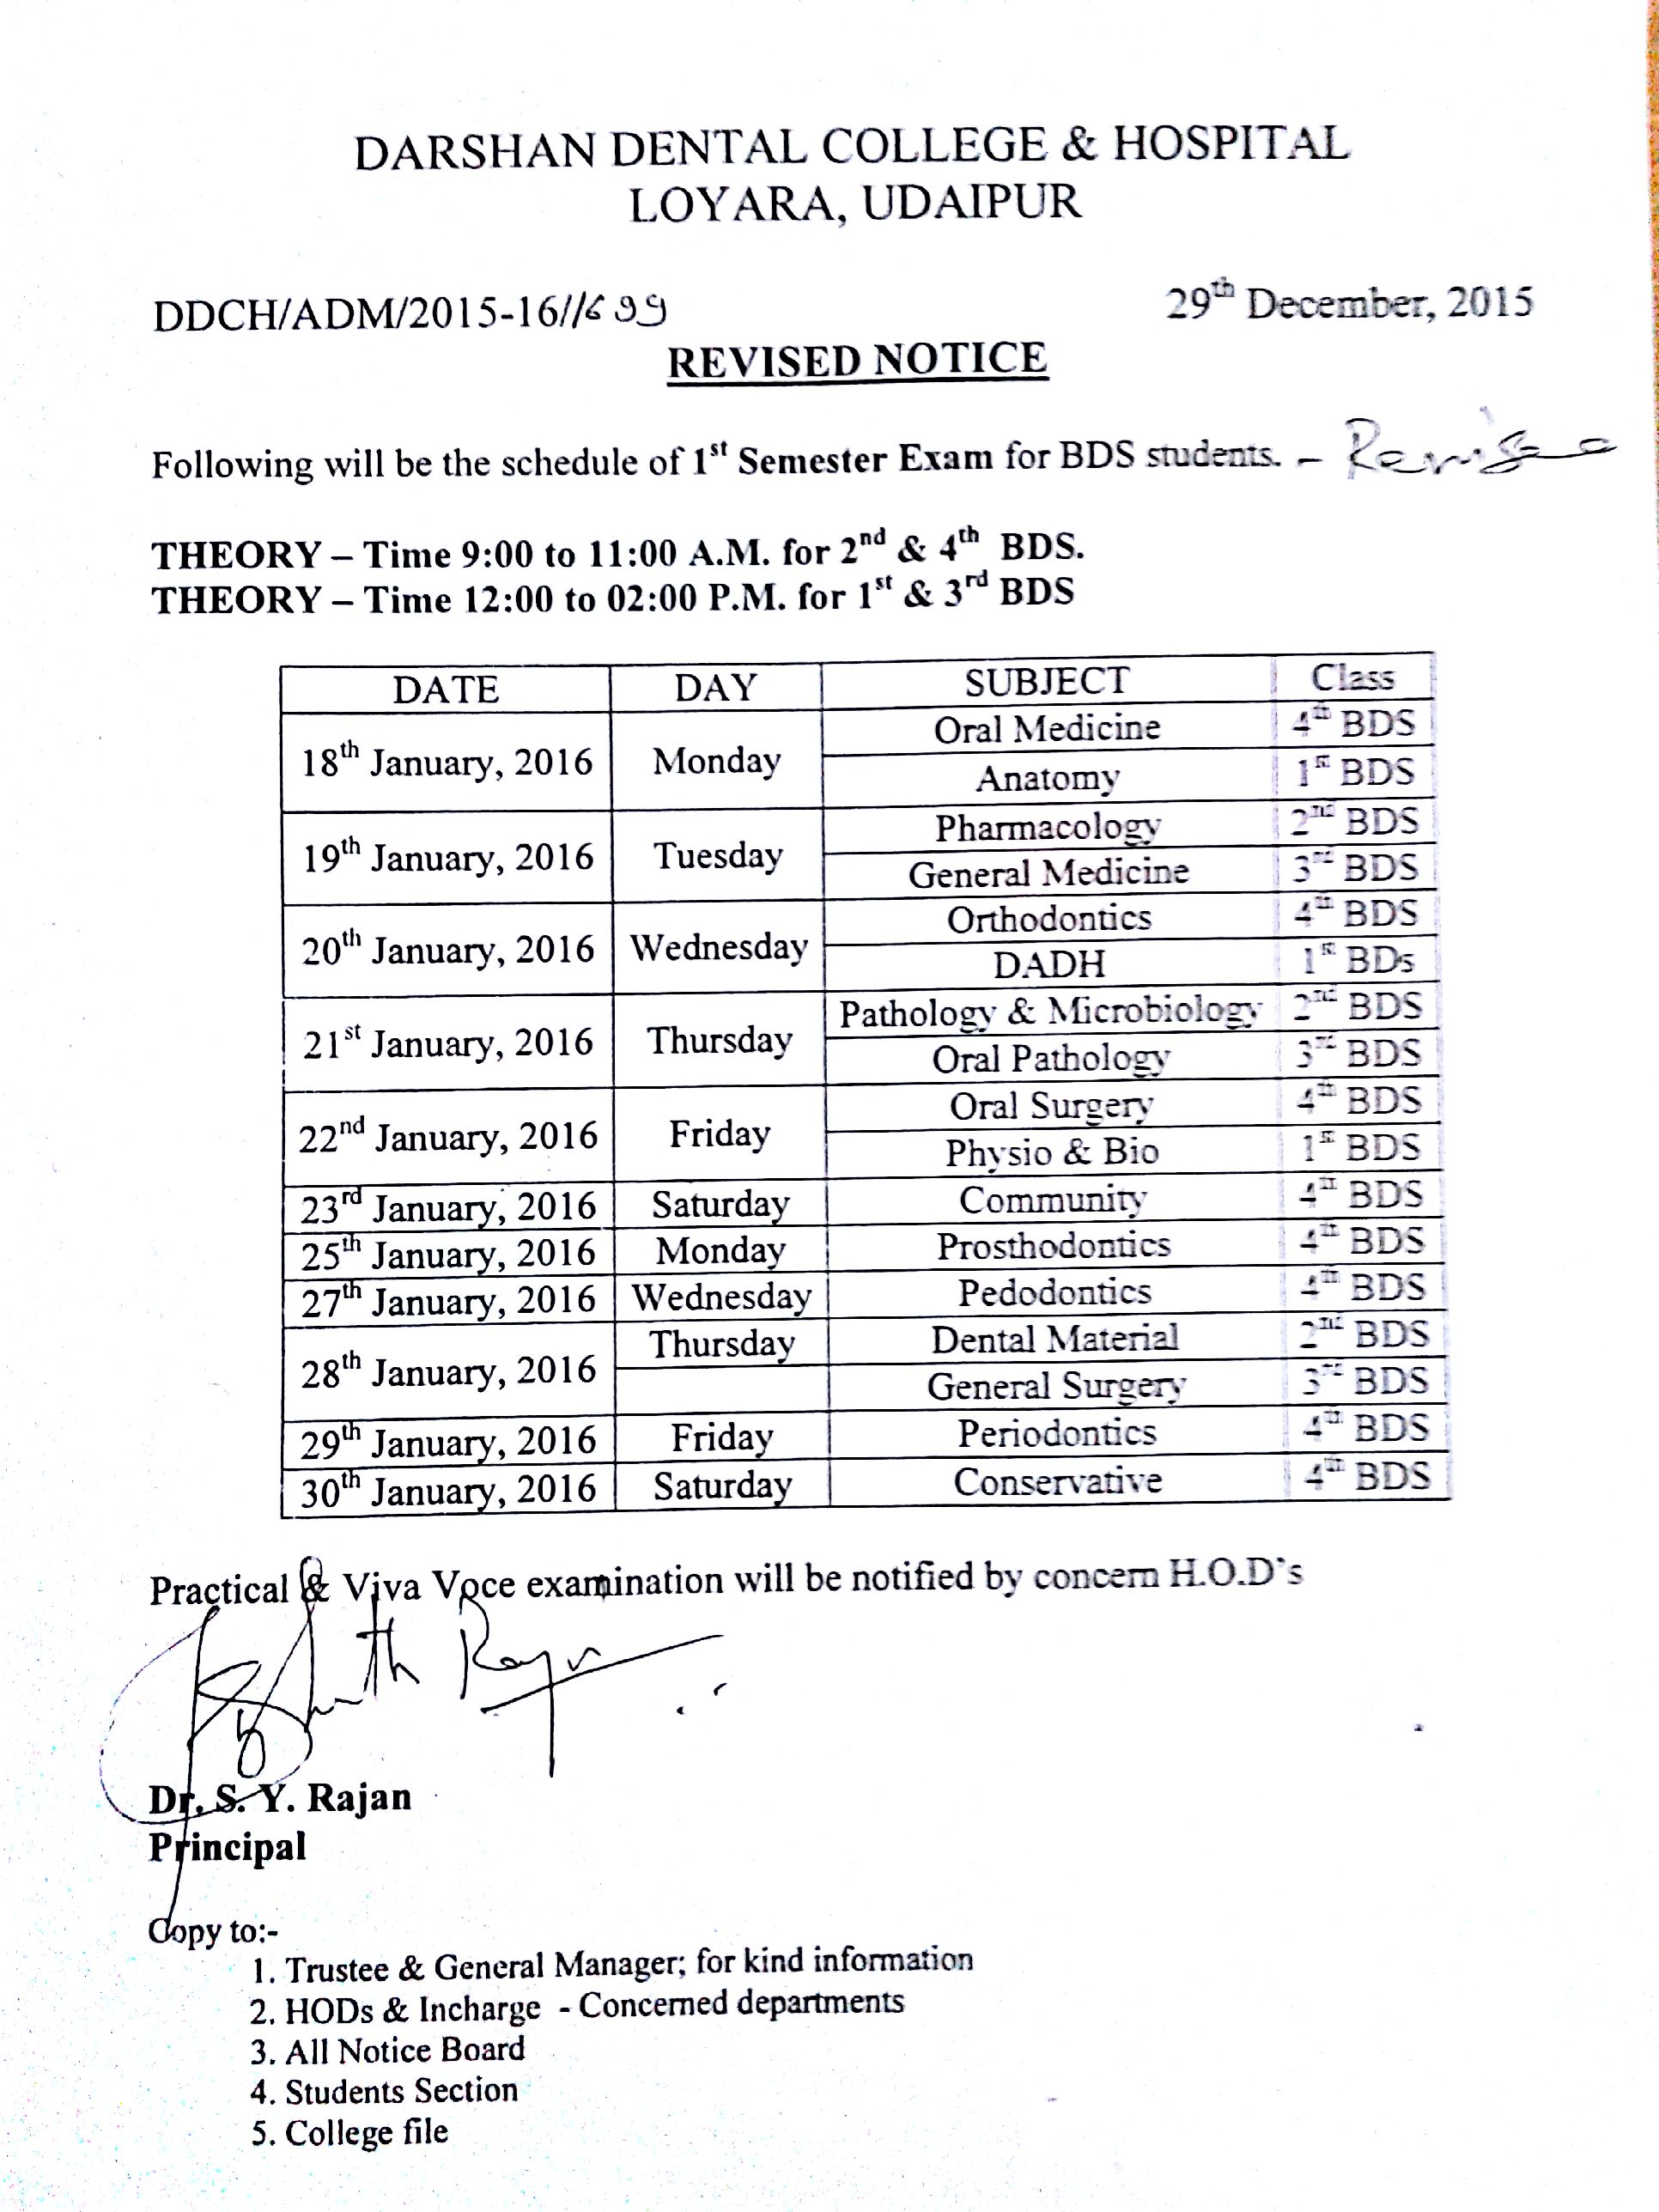 Schedule_of_1st_Semester_Exam_for_BDS_Students